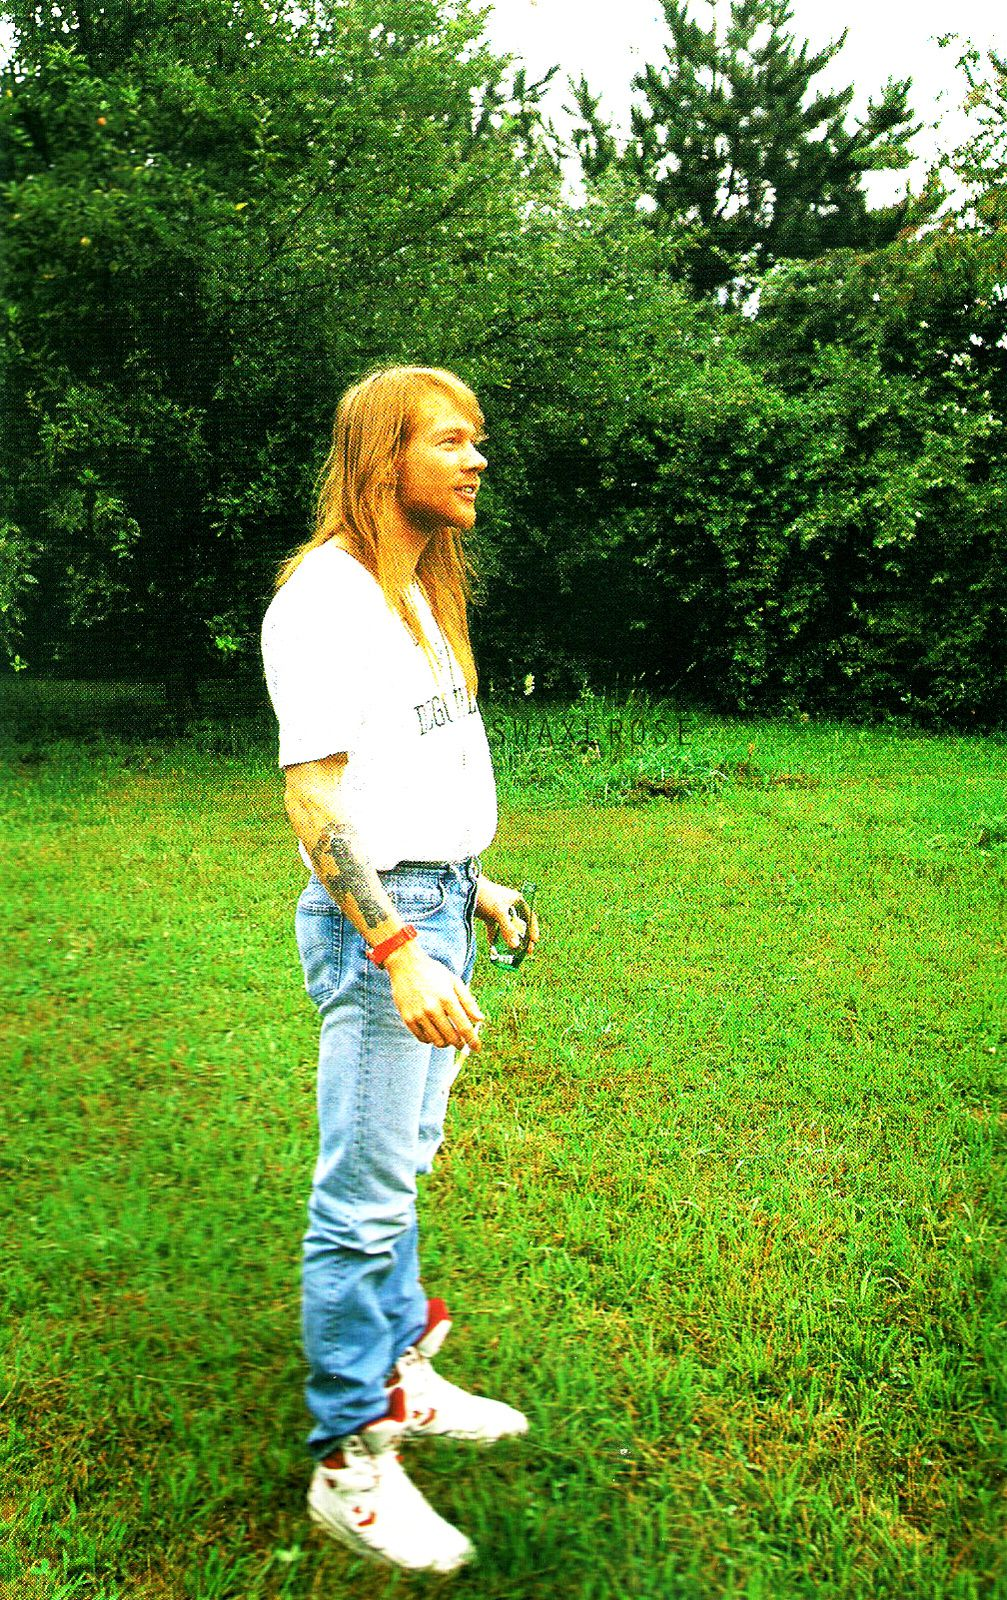 Axl Rose 1992 - Axl in his hometown of Lafayette, Indiana, July 23, 1992. The trees in the background were planted by Axl, his brother Stuart, and his sister Amy.